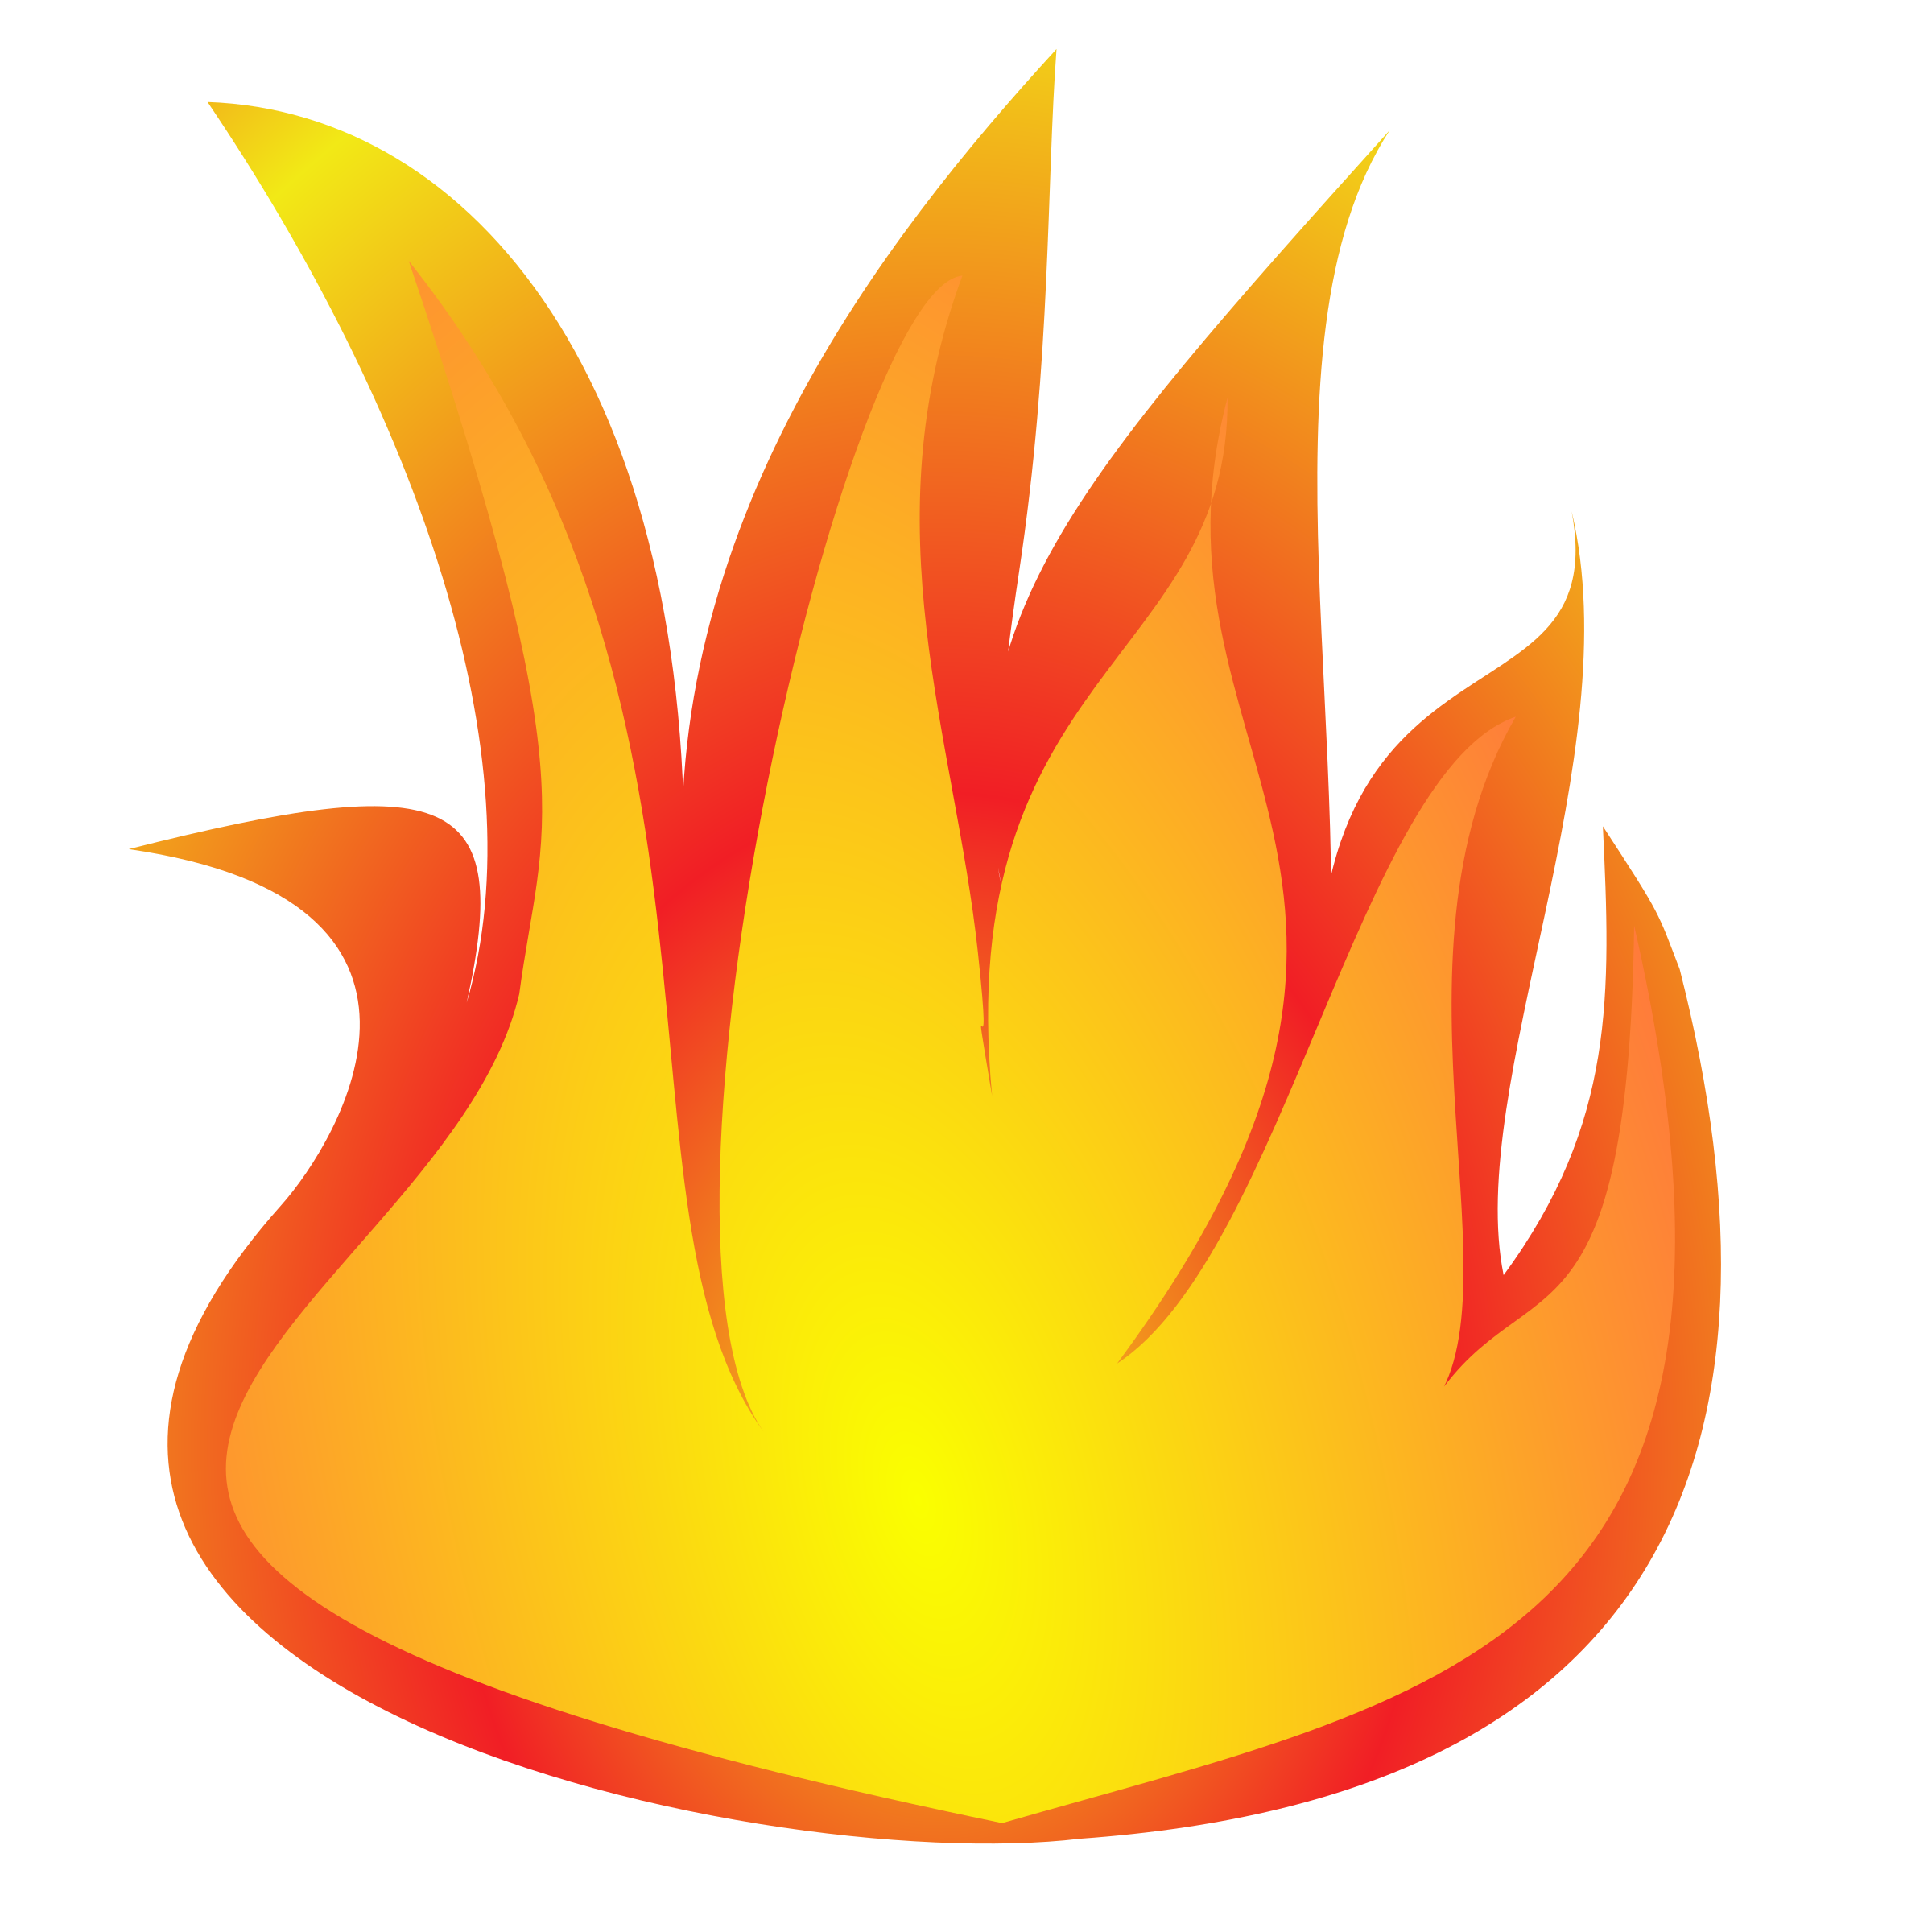 2400x2400 Flame Clip Art Vector Flame Graphics Image 4